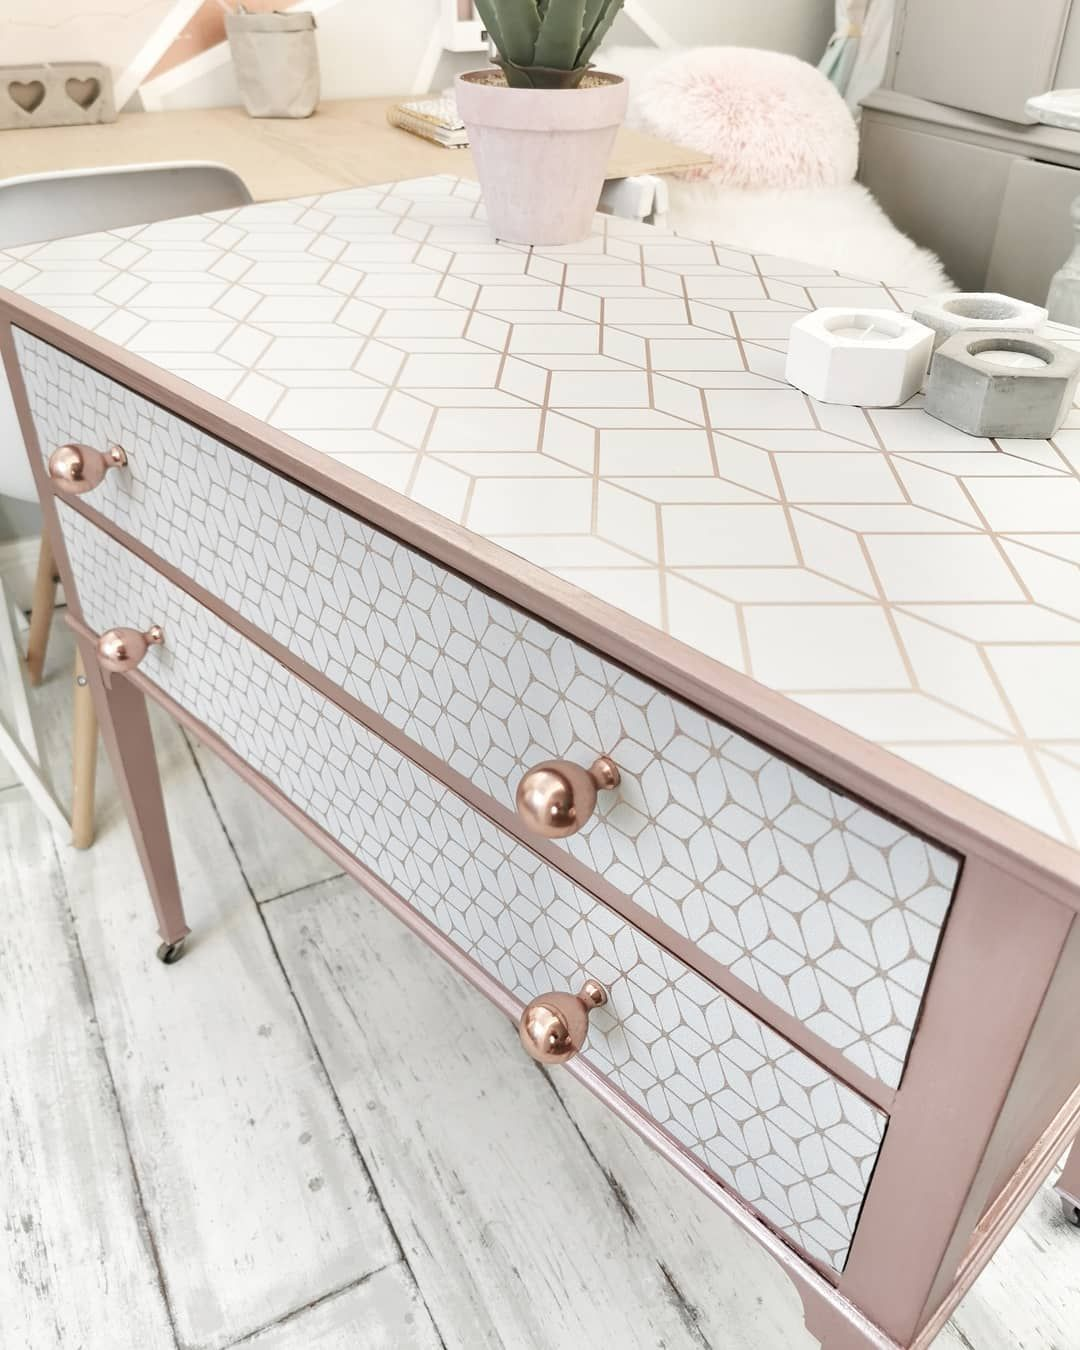 Chest of drawers painted in rose gold paint & decoupaged